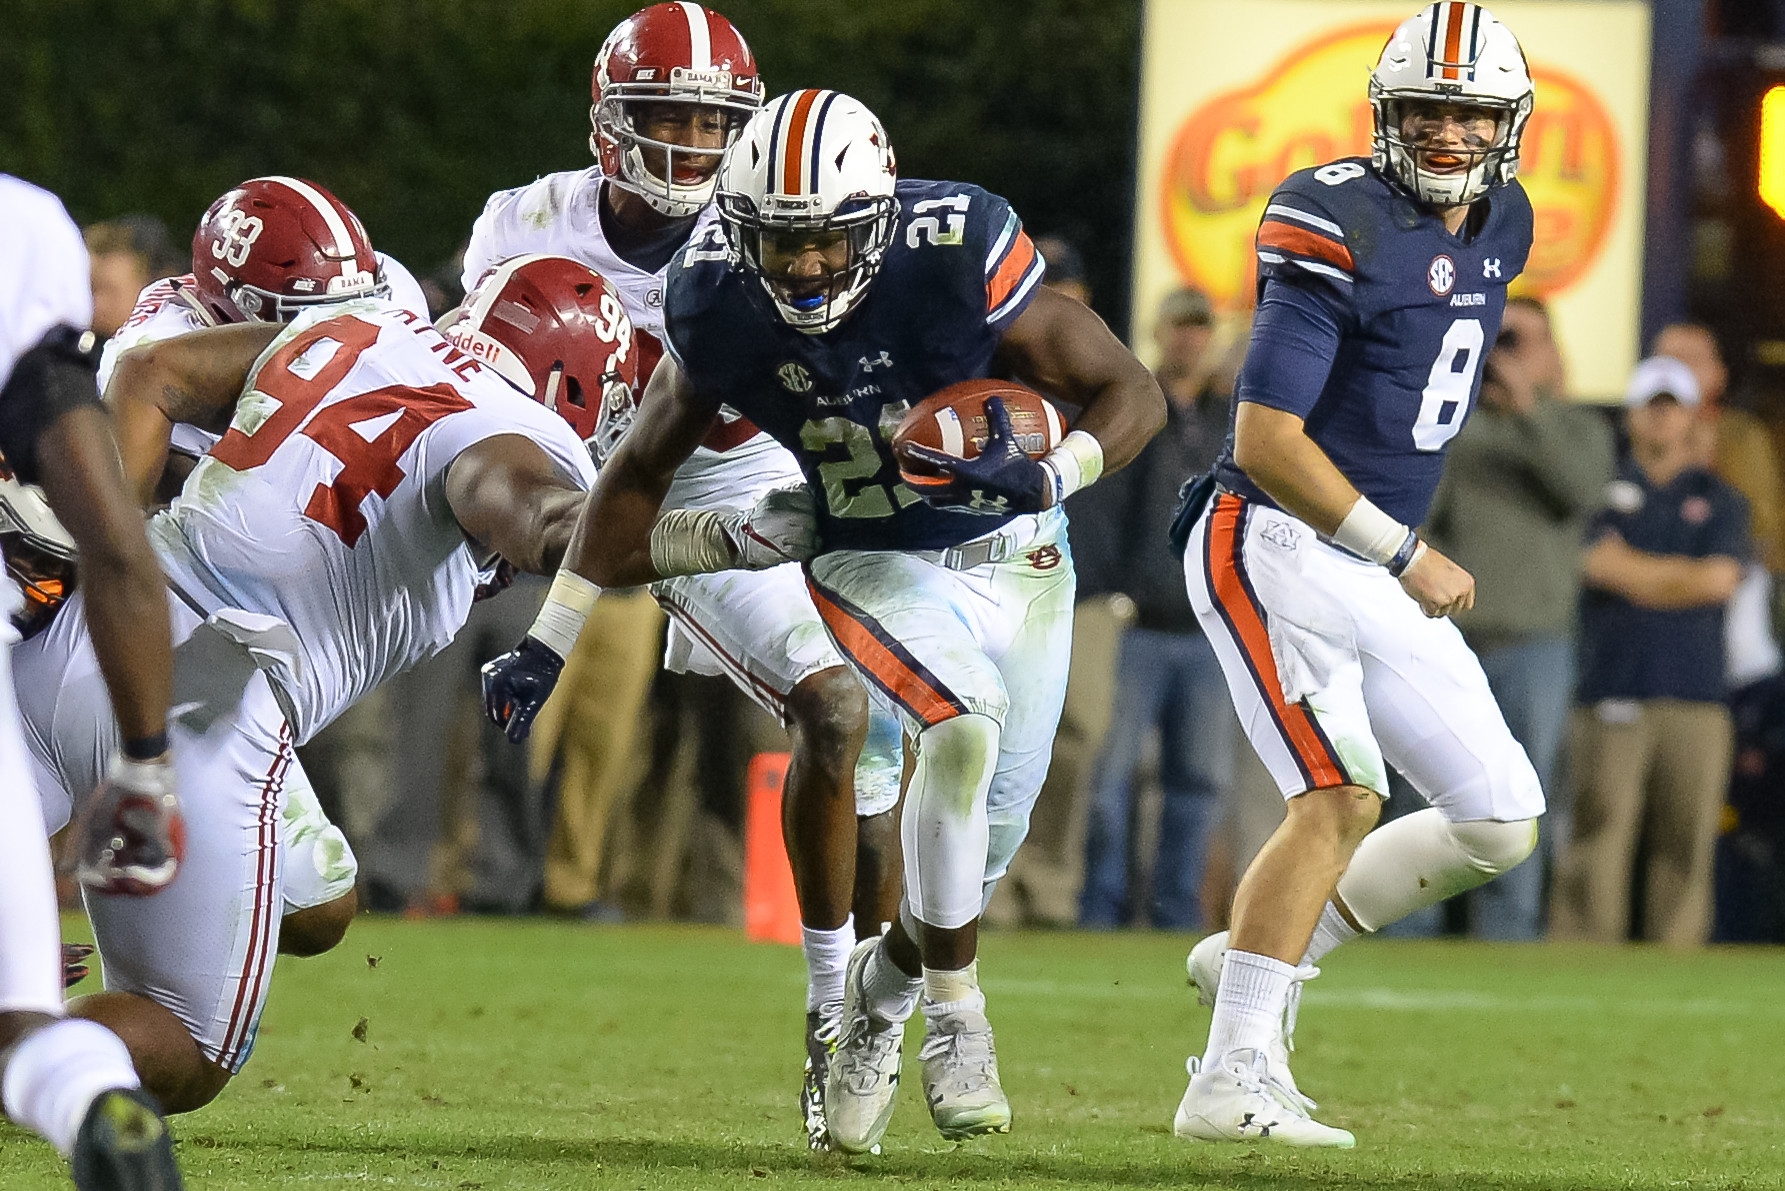 Auburn Tigers running back Kerryon Johnson (21) runs through a tackle of Alabama Crimson Tide defensive lineman Da'Ron Payne (94) during the second half of Saturday's game, at Jordan-Hare Stadium.